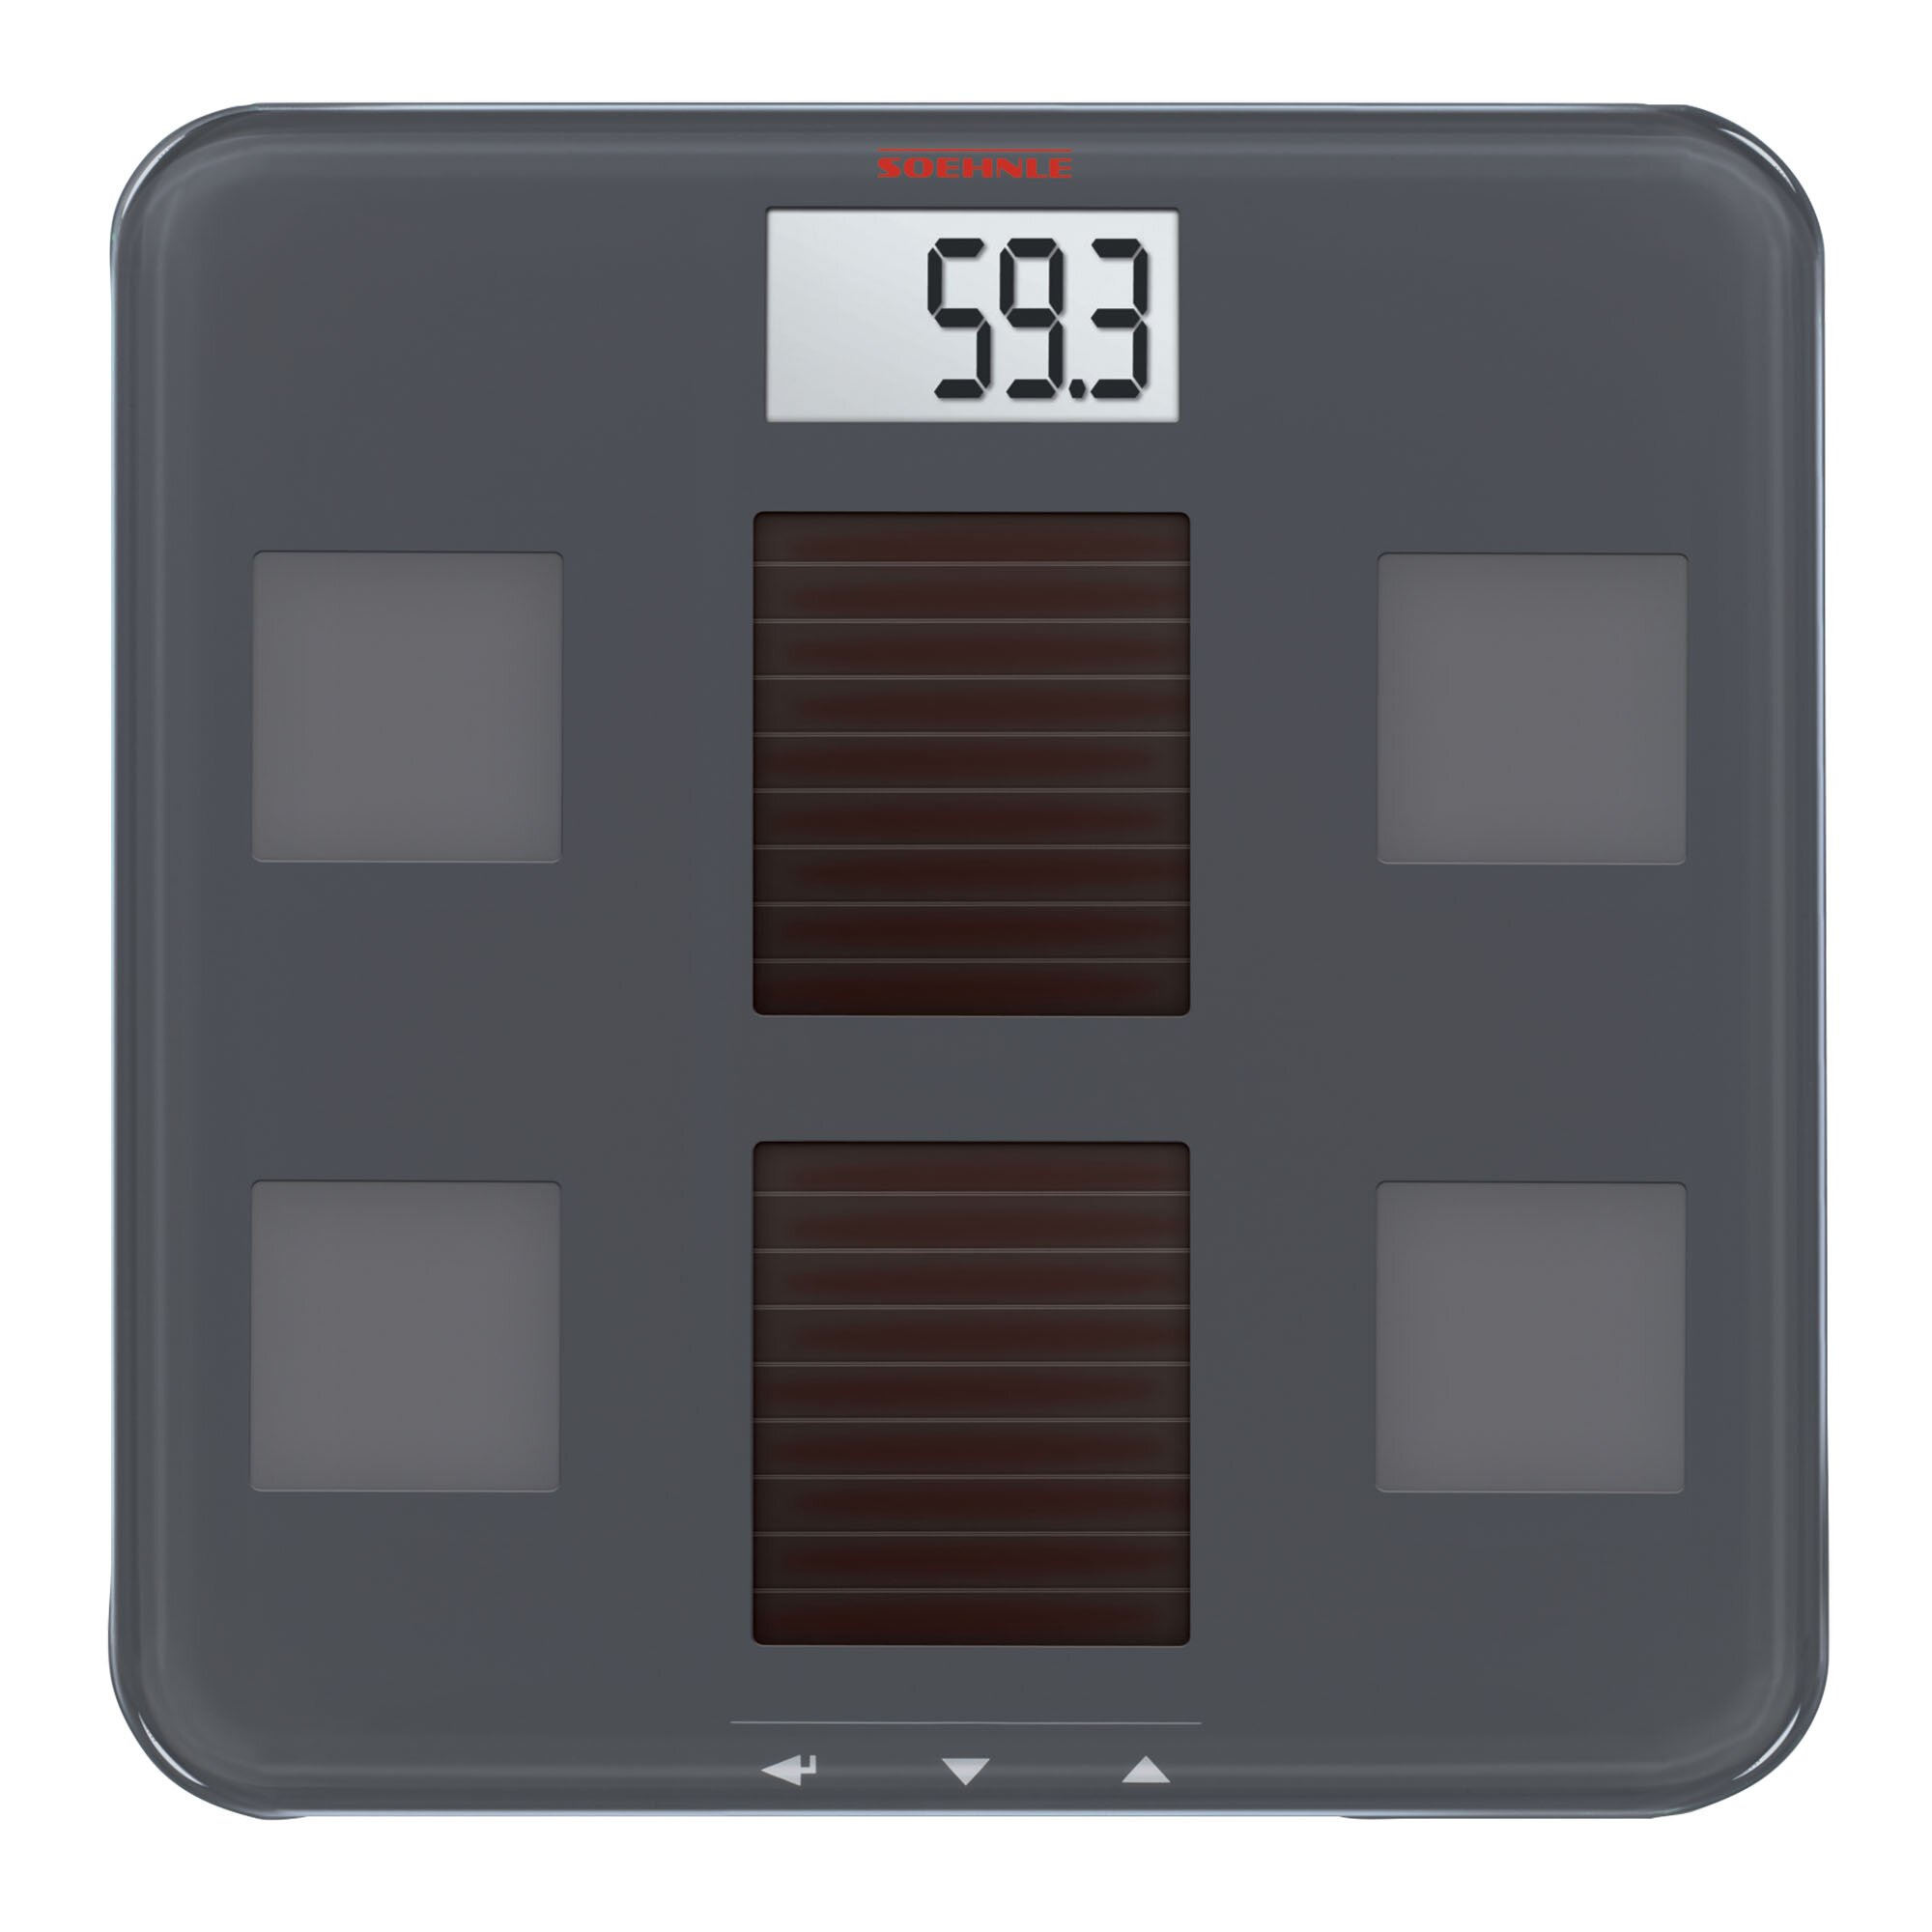 Solar Fit Body Precision Digital Analysis Bmi Bathroom Scale